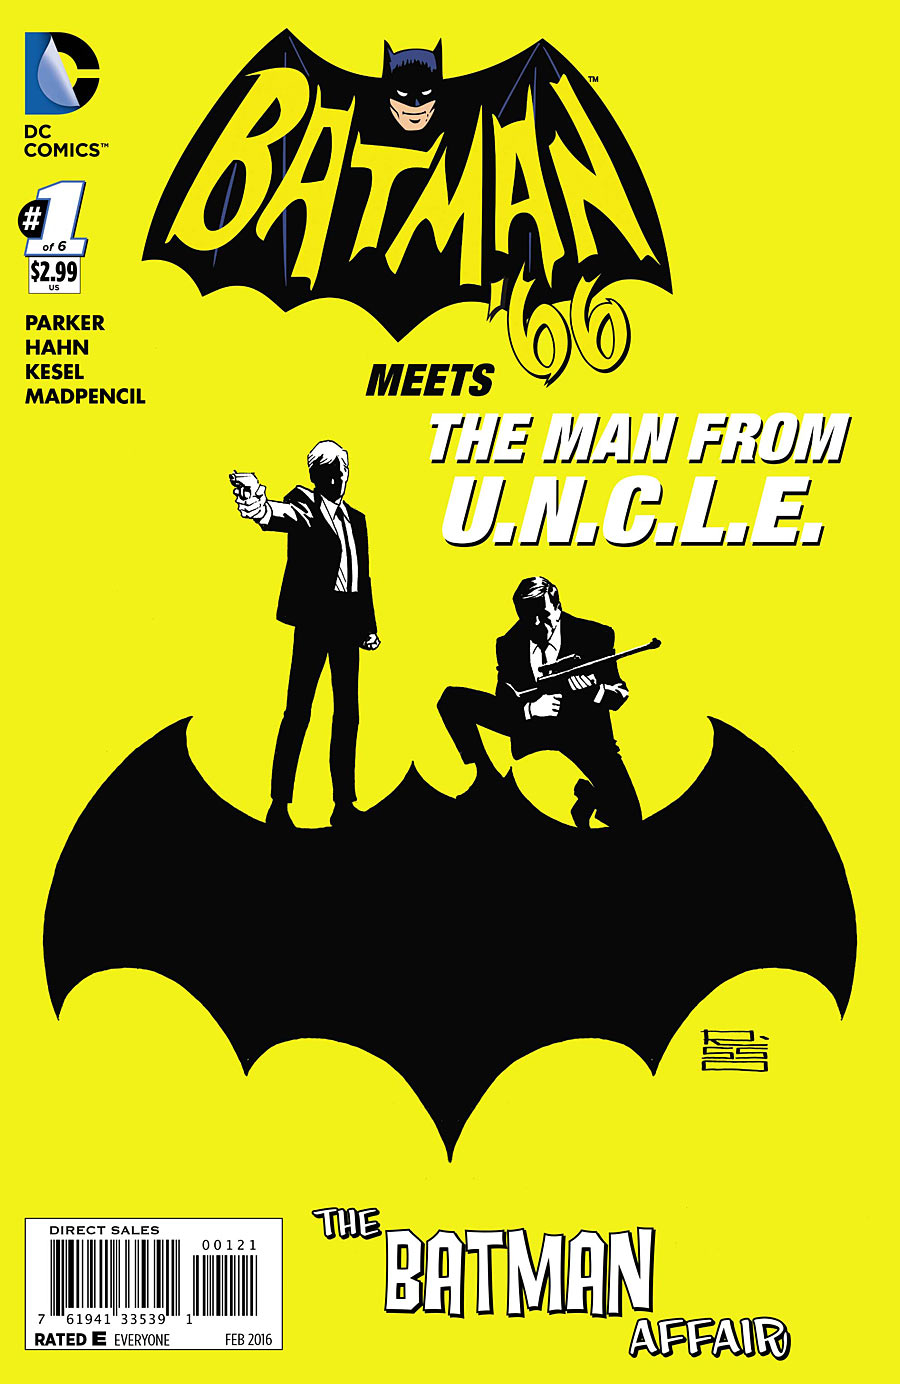 BATMAN 66 MEETS THE MAN FROM UNCLE #1 (OF 6) VAR ED